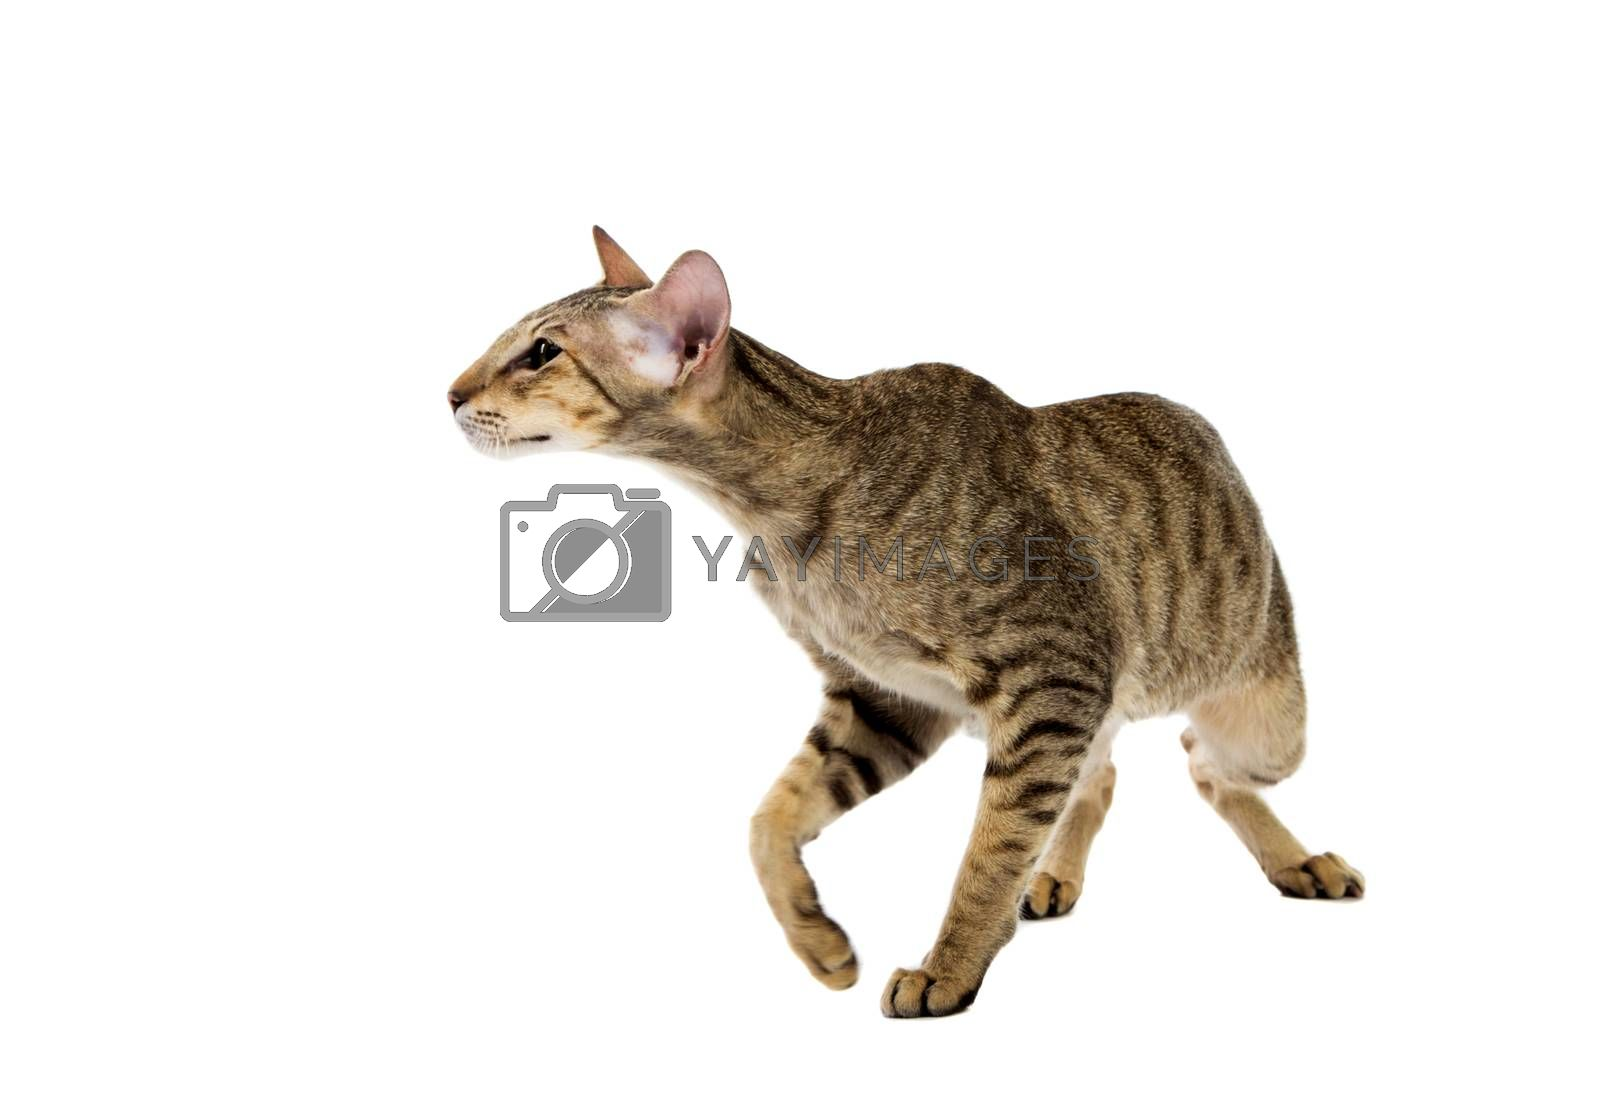 Royalty free image of aggressive siamese cat. isolated on white by gsdonlin